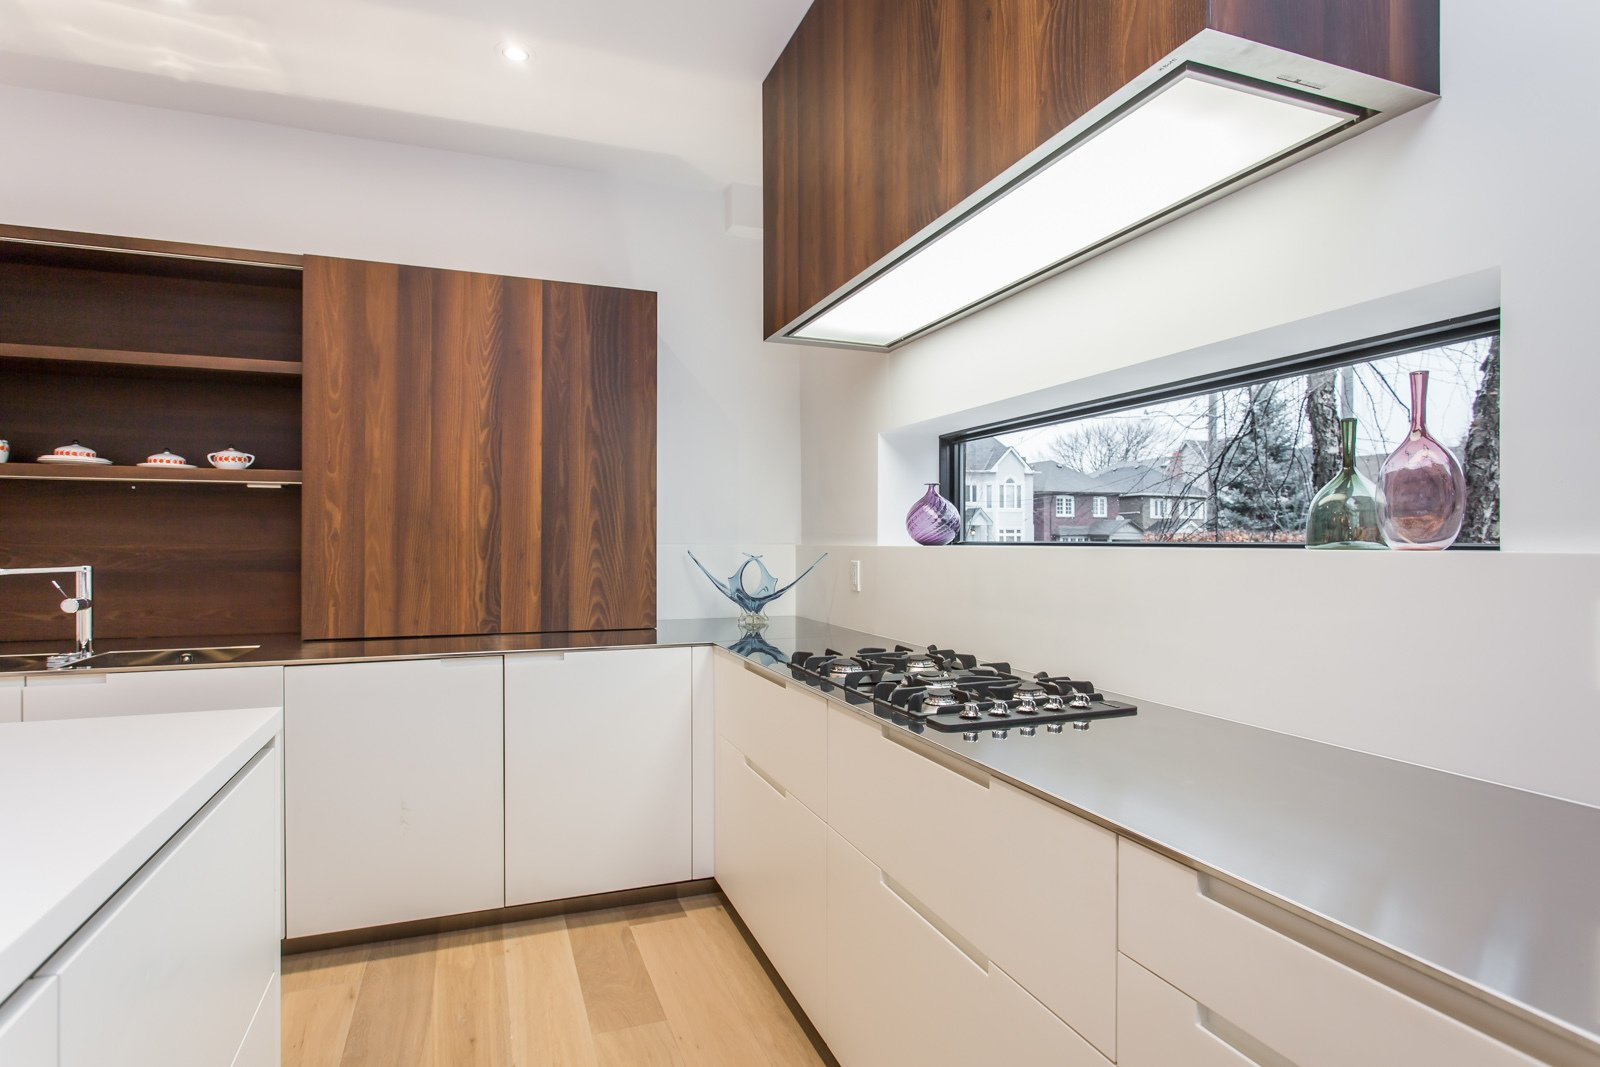 A long window above the countertop provides a nice view to the outside world while cooking.  Manor Road house by Nathalie Thorel